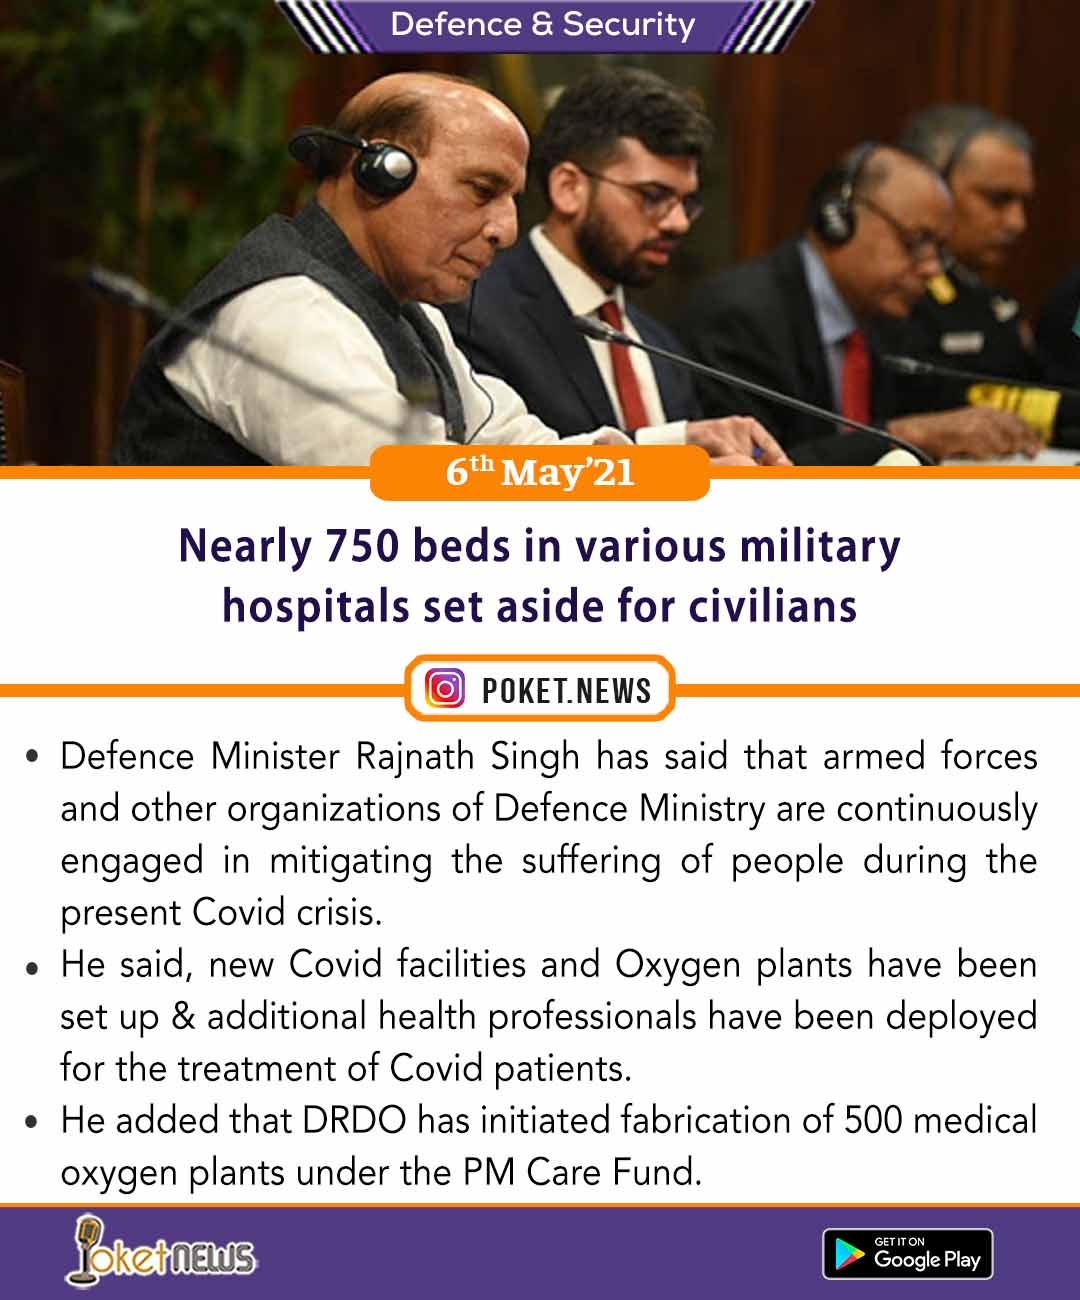 Nearly 750 beds in various military hospitals set aside for civilians